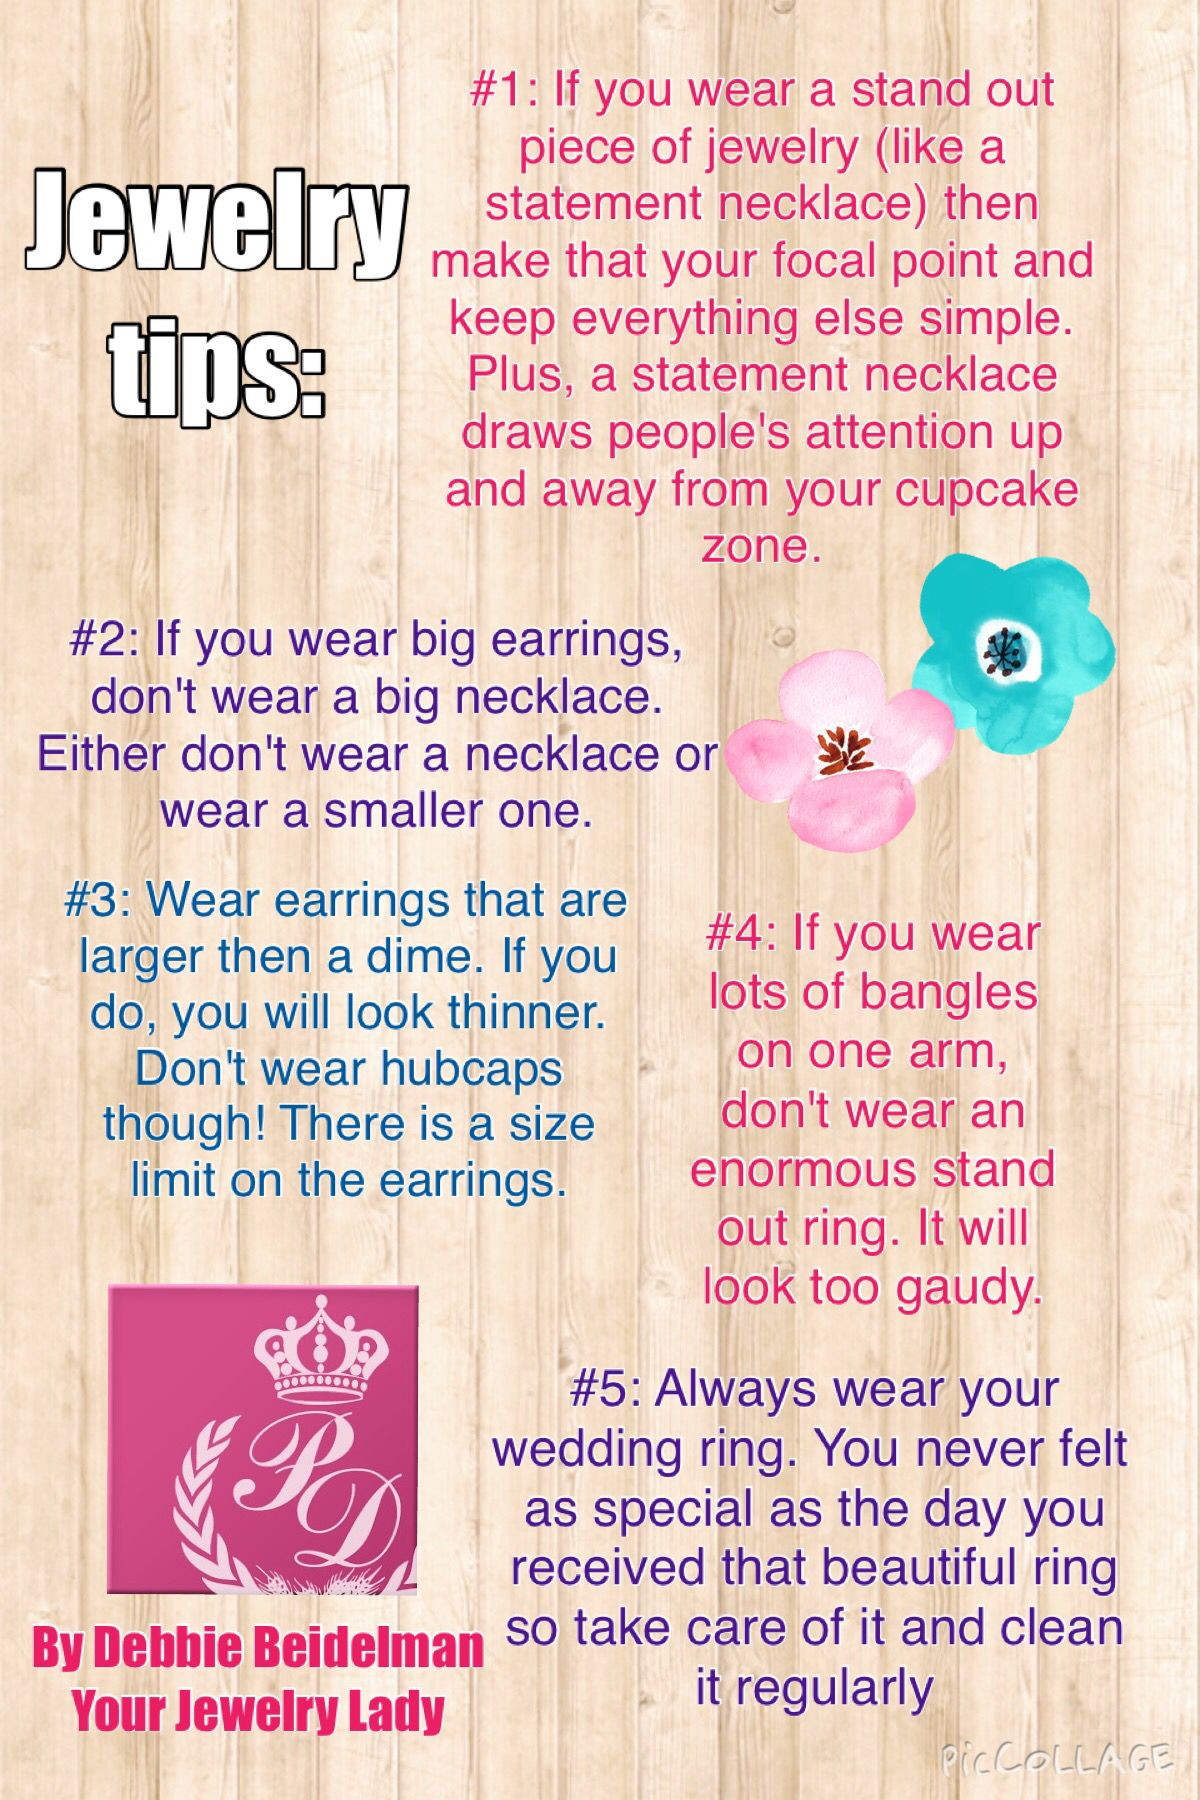 Jewelry tips by me!!!